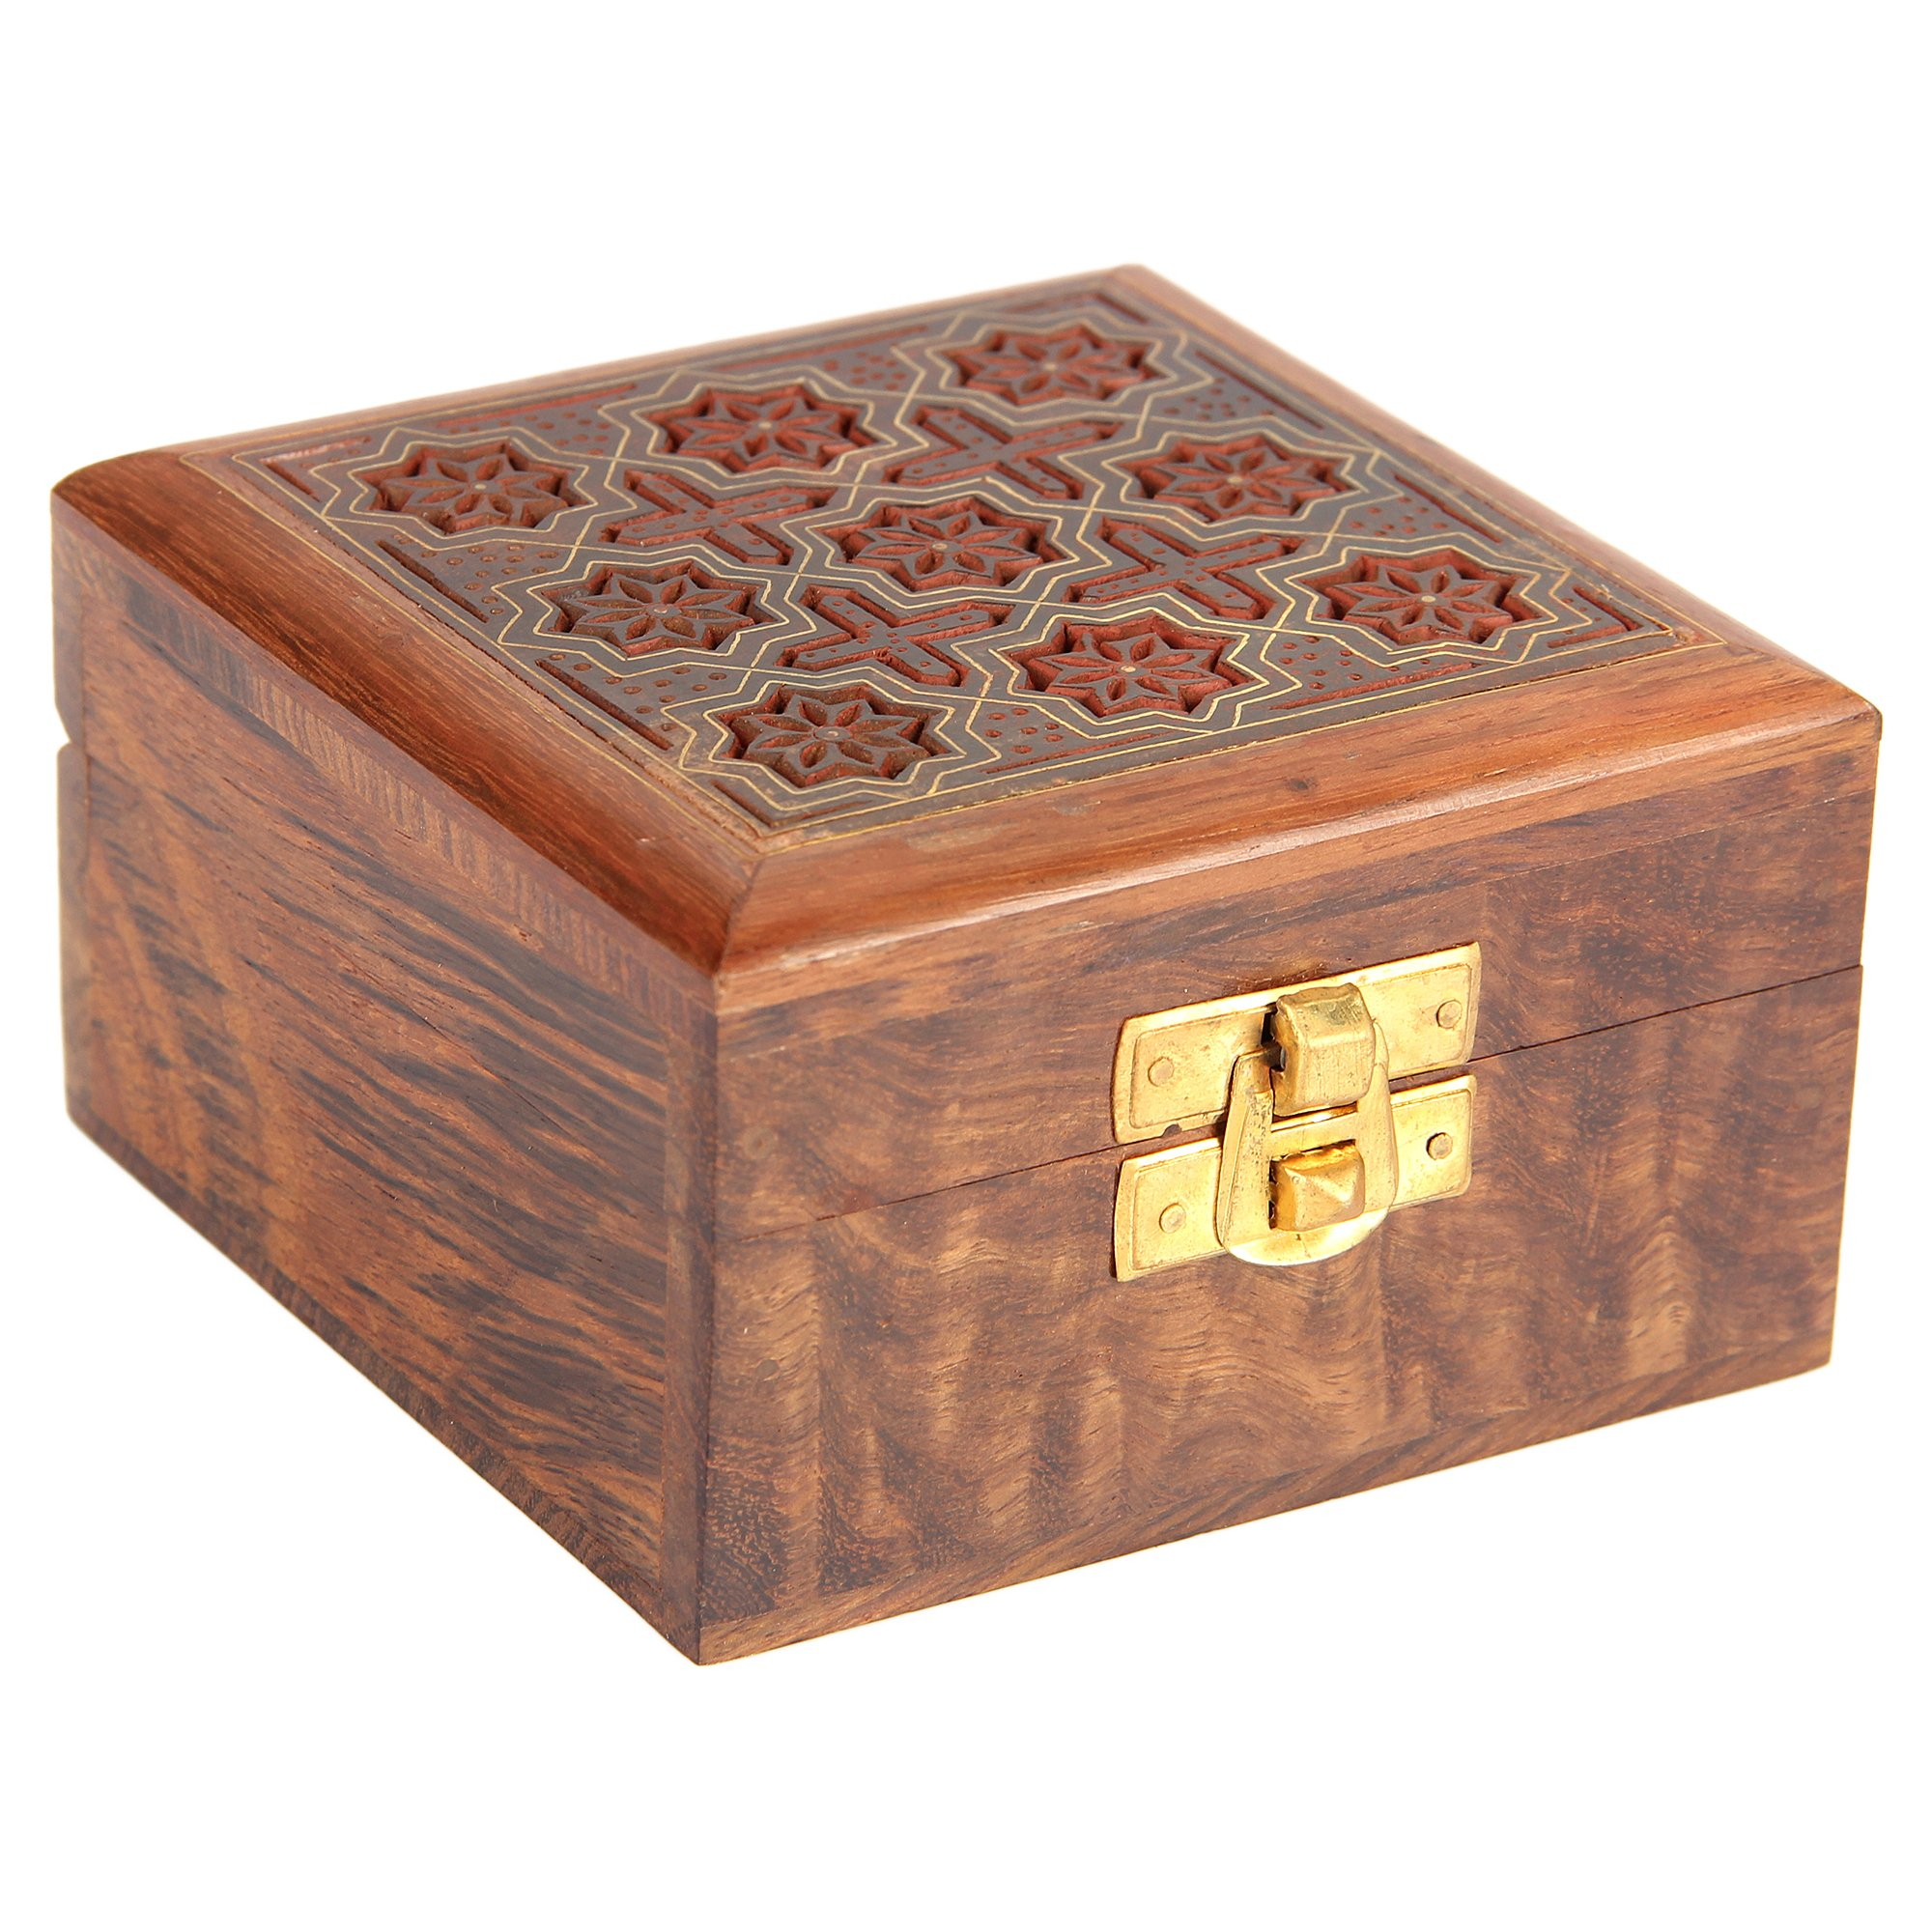 Indian Jewelry Holder - 4 x 4 x 2.25 Inch Small Wood Box - Jewelry Boxes for Bracelet - Present for Her